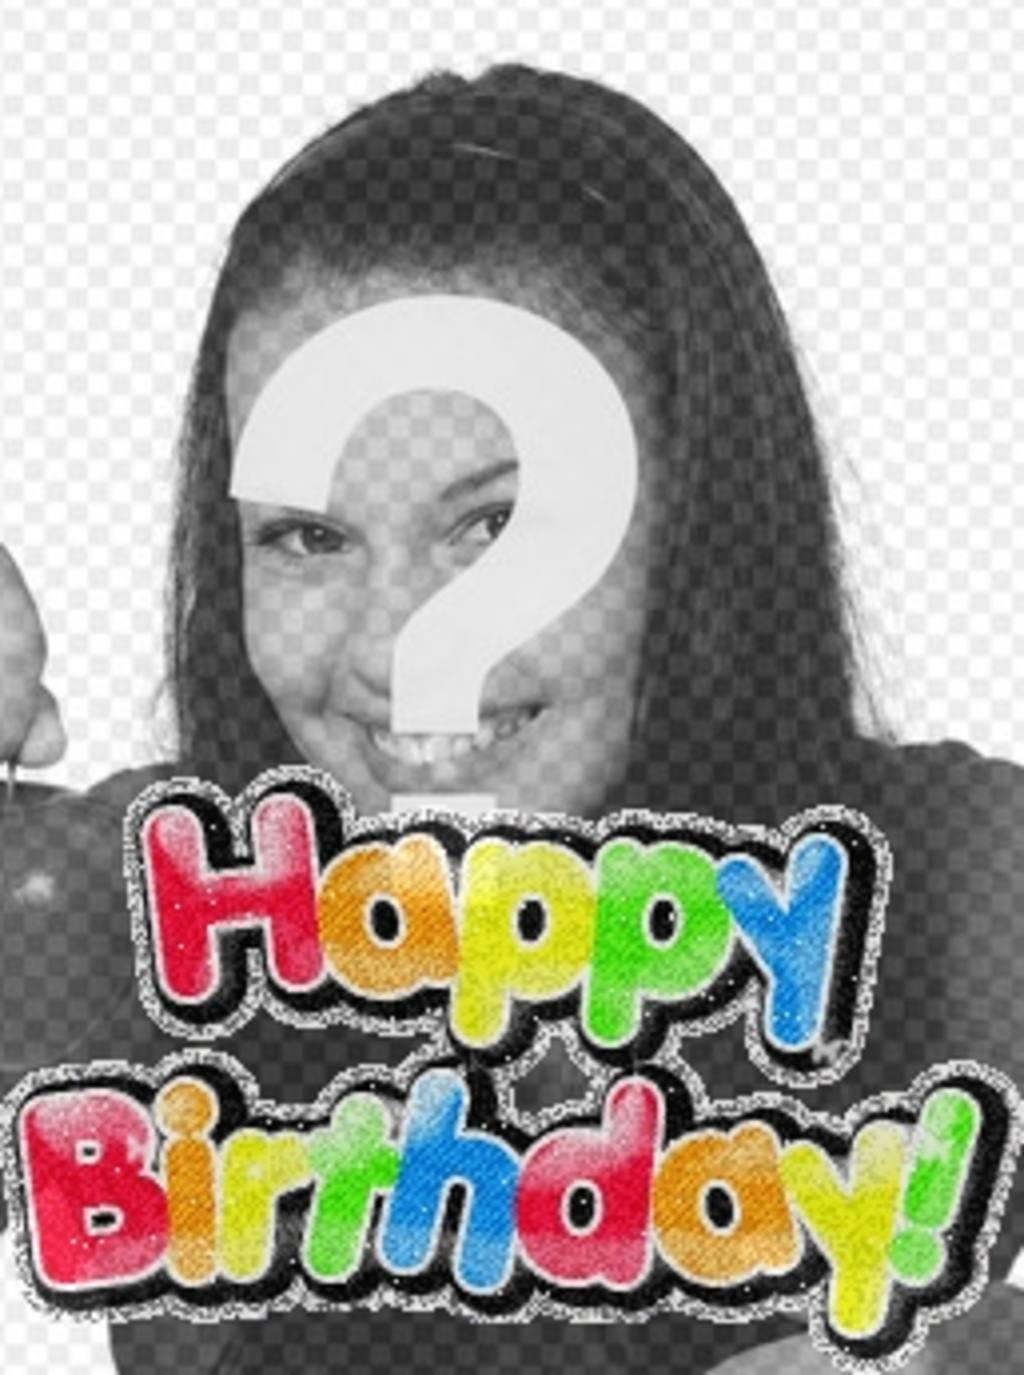 Photomontage To Make Ur Own Birthday Card U Can Personalize With Photo The Template For This